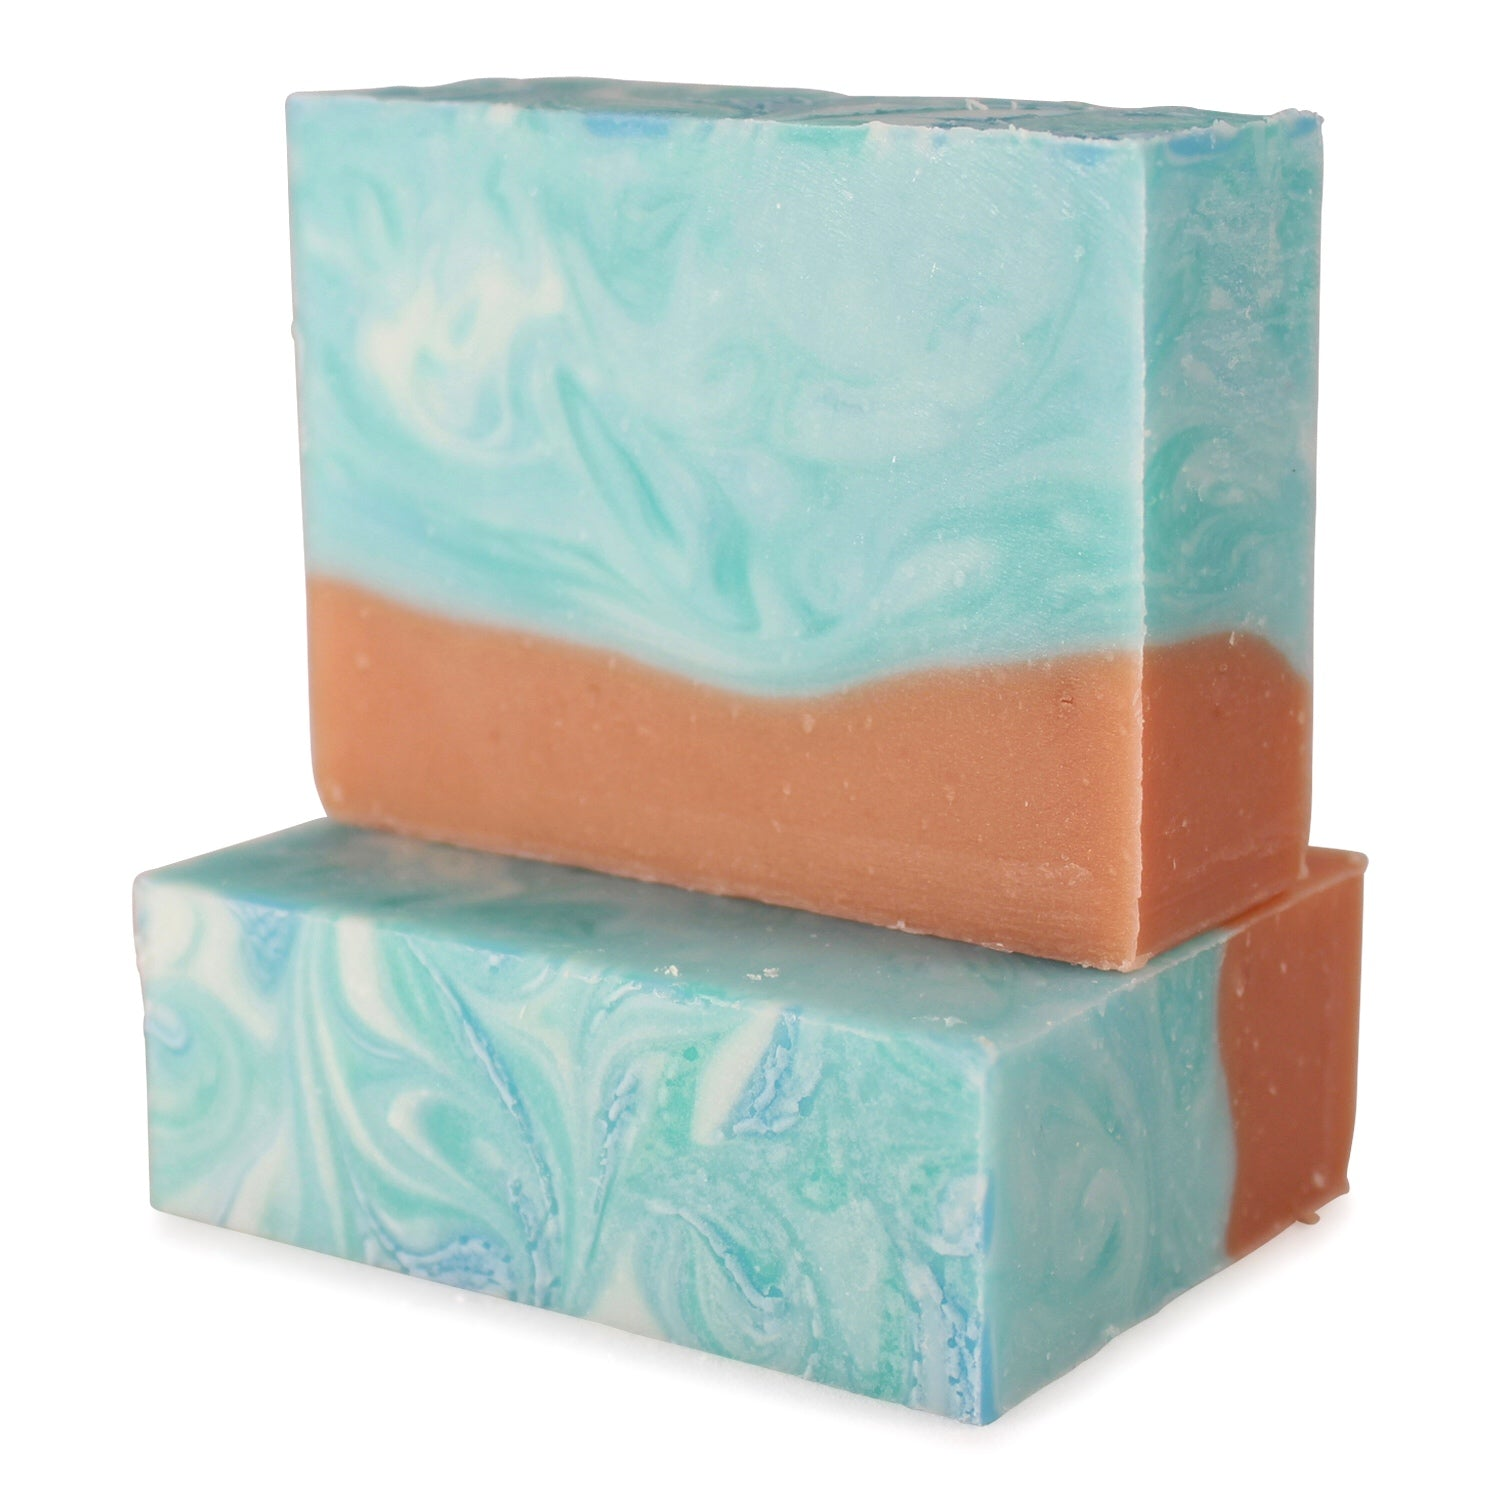 Seaside Soap | water lily, apple blossoms, sandalwood + bergamot - Canard Labs